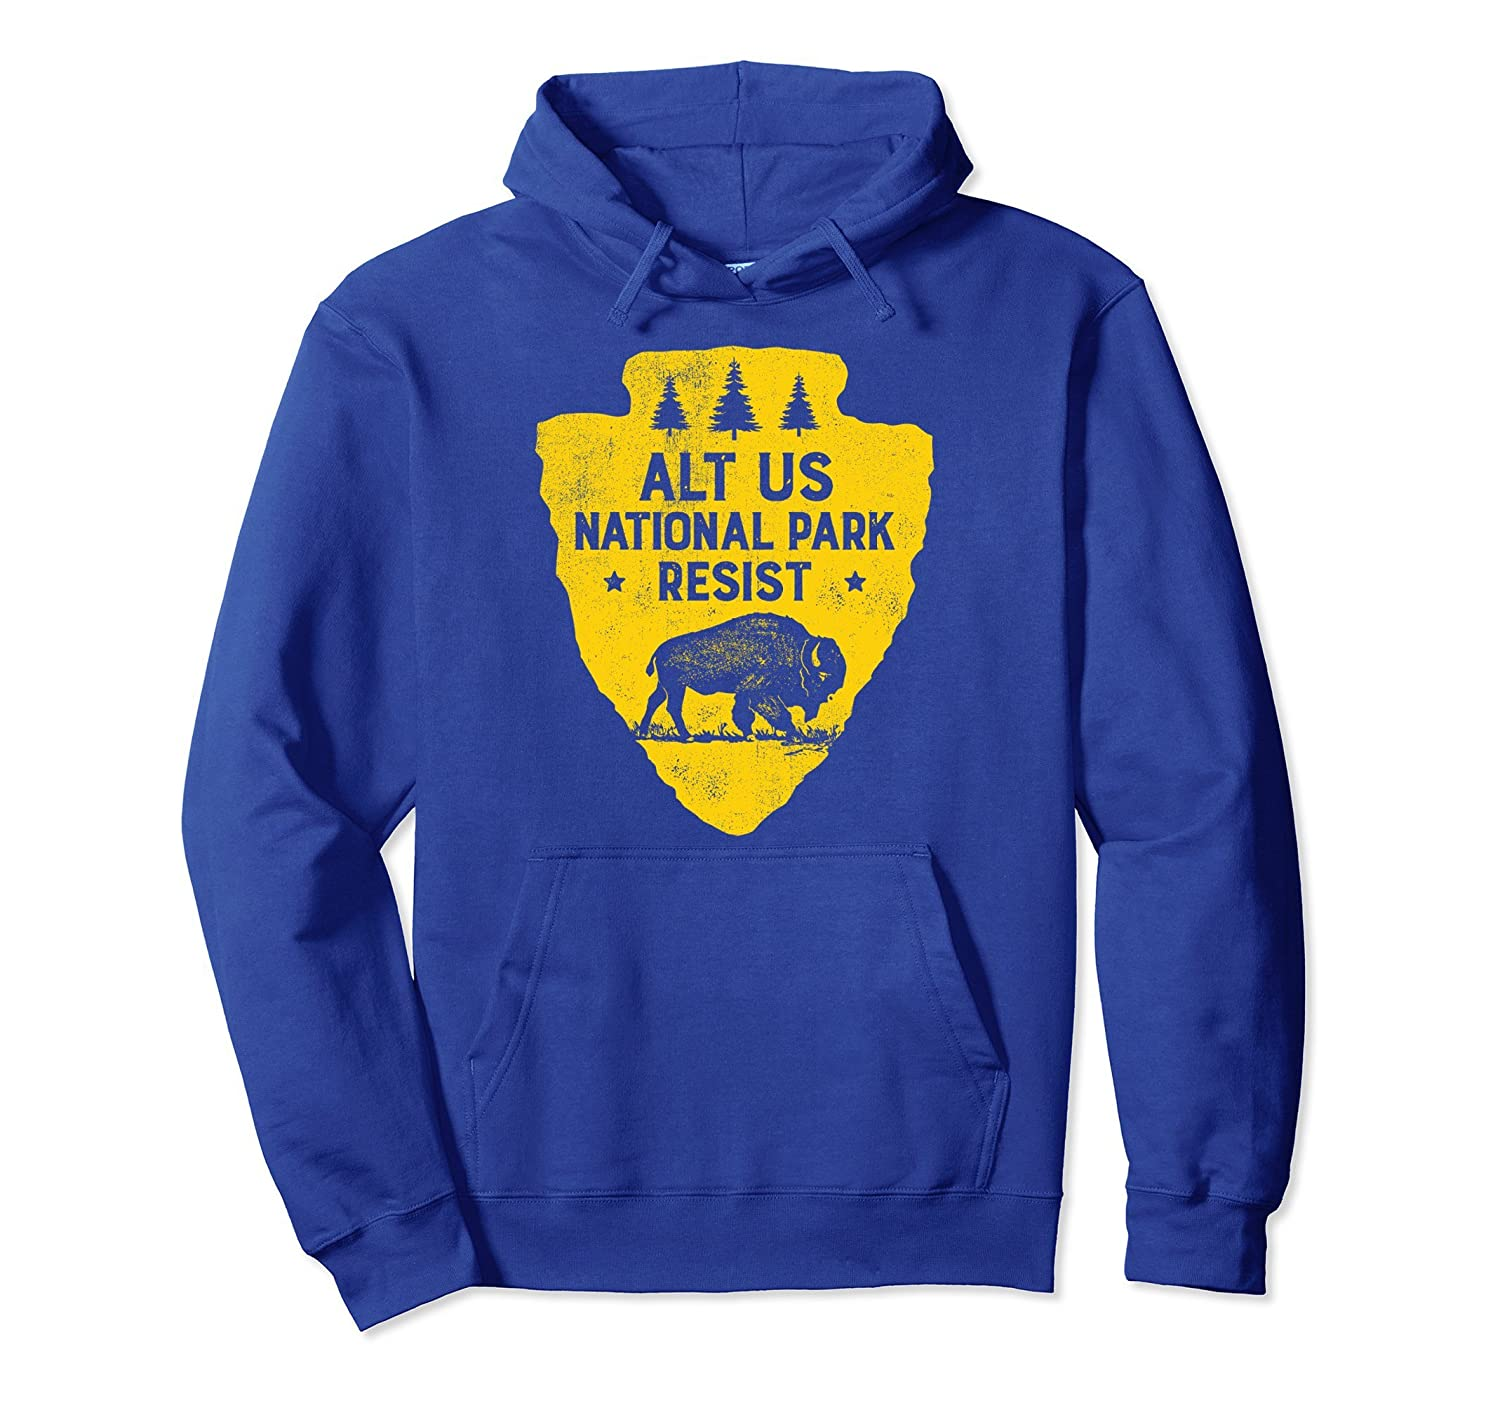 ALT US National Park Resist Service Hoodie Shirt Bison-ah my shirt one gift